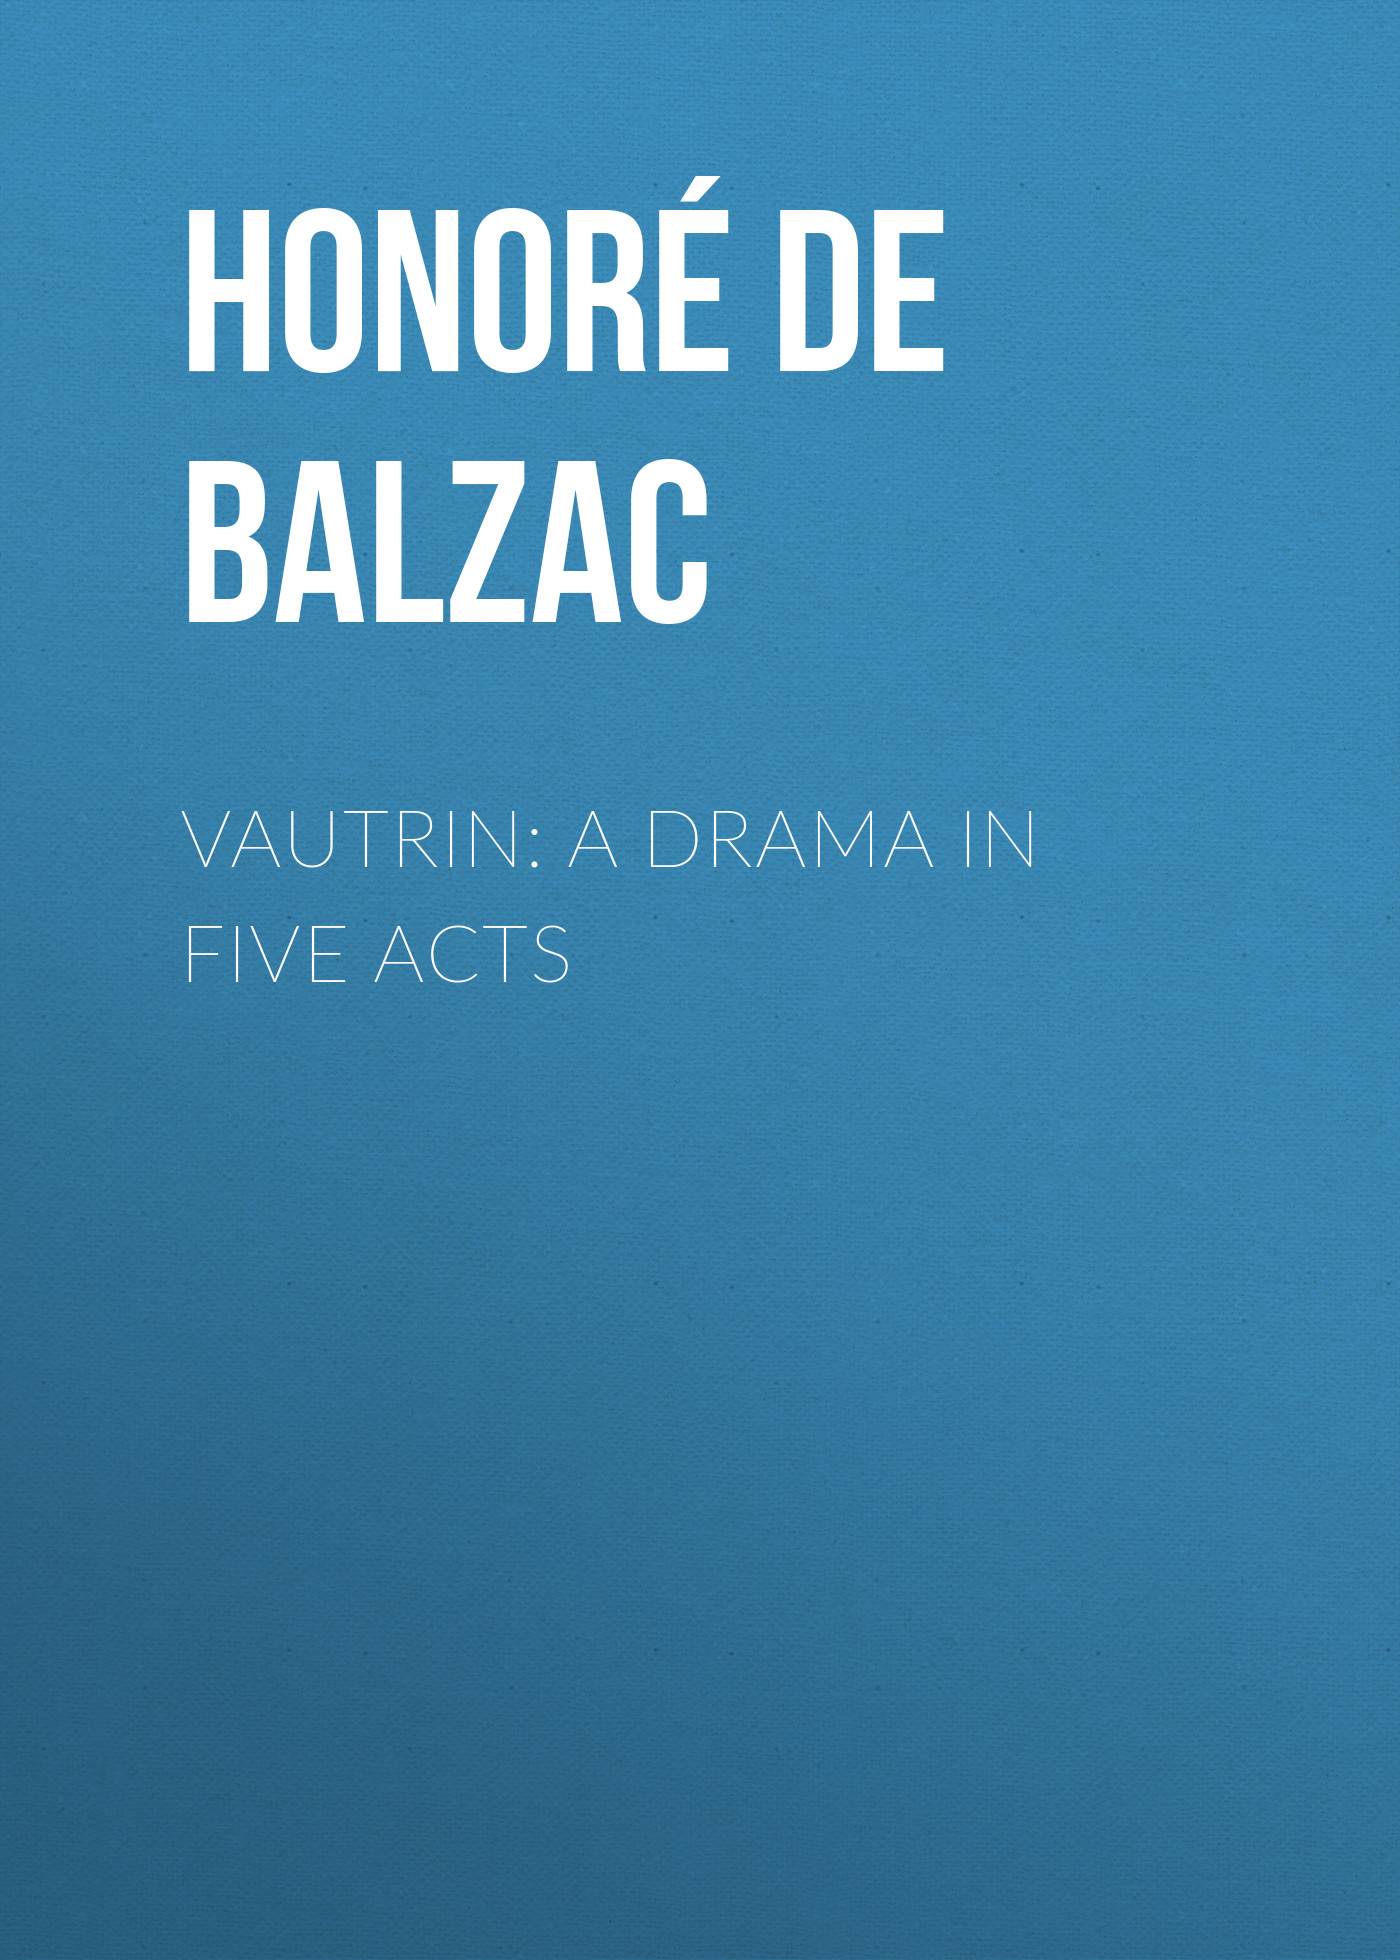 Оноре де Бальзак Vautrin: A Drama in Five Acts charles townsend a loyal friend a comedy drama in four acts